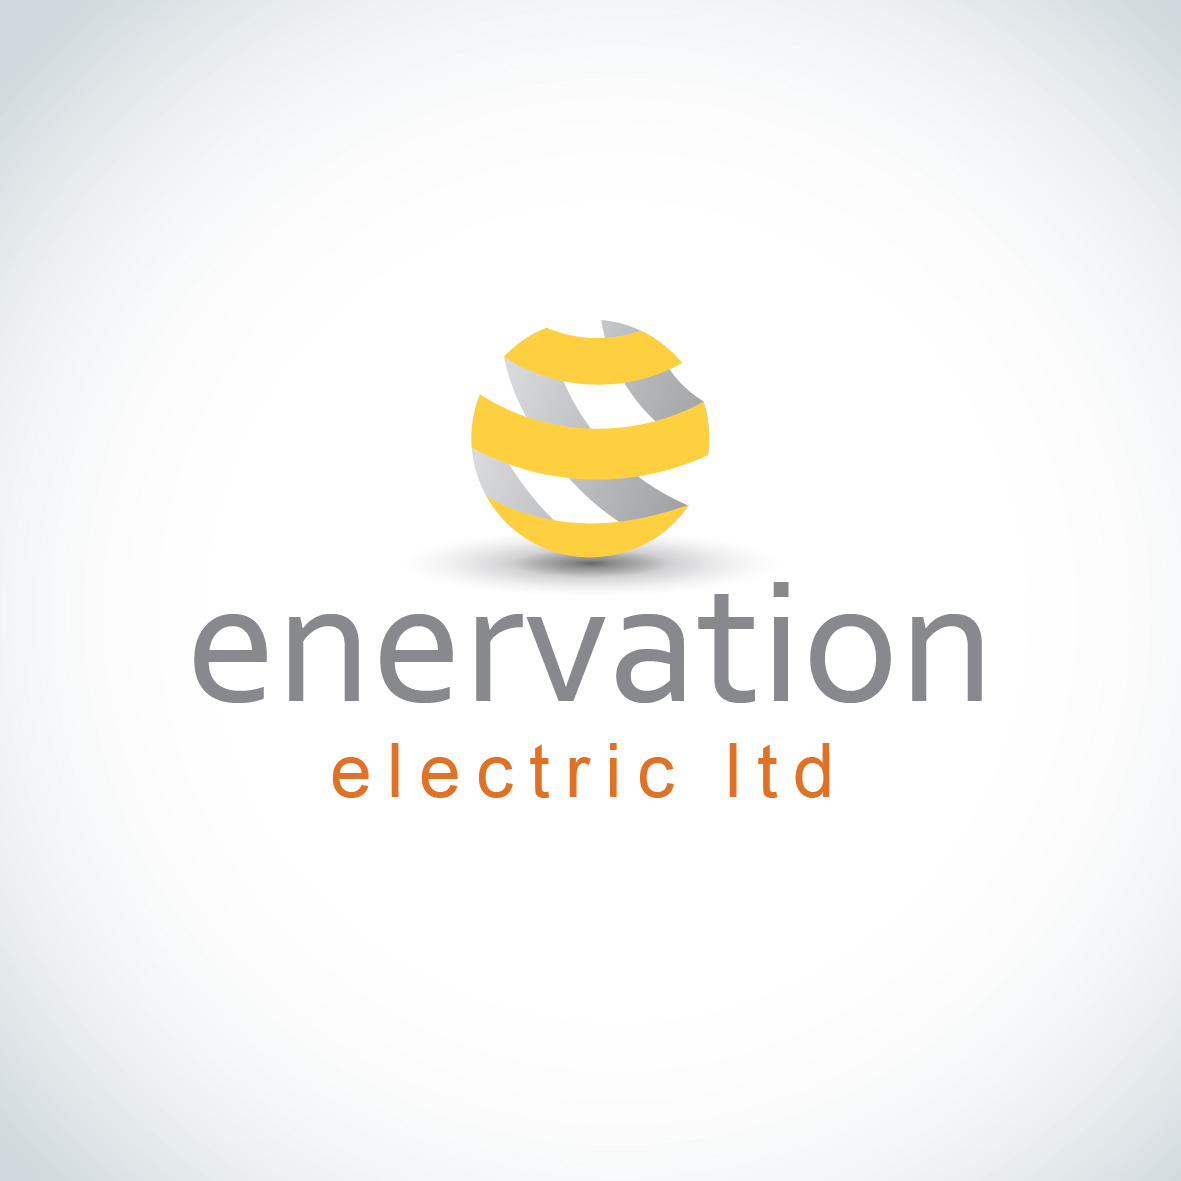 Business Card Design by aesthetic-art - Entry No. 141 in the Business Card Design Contest Enervation Logo Design.